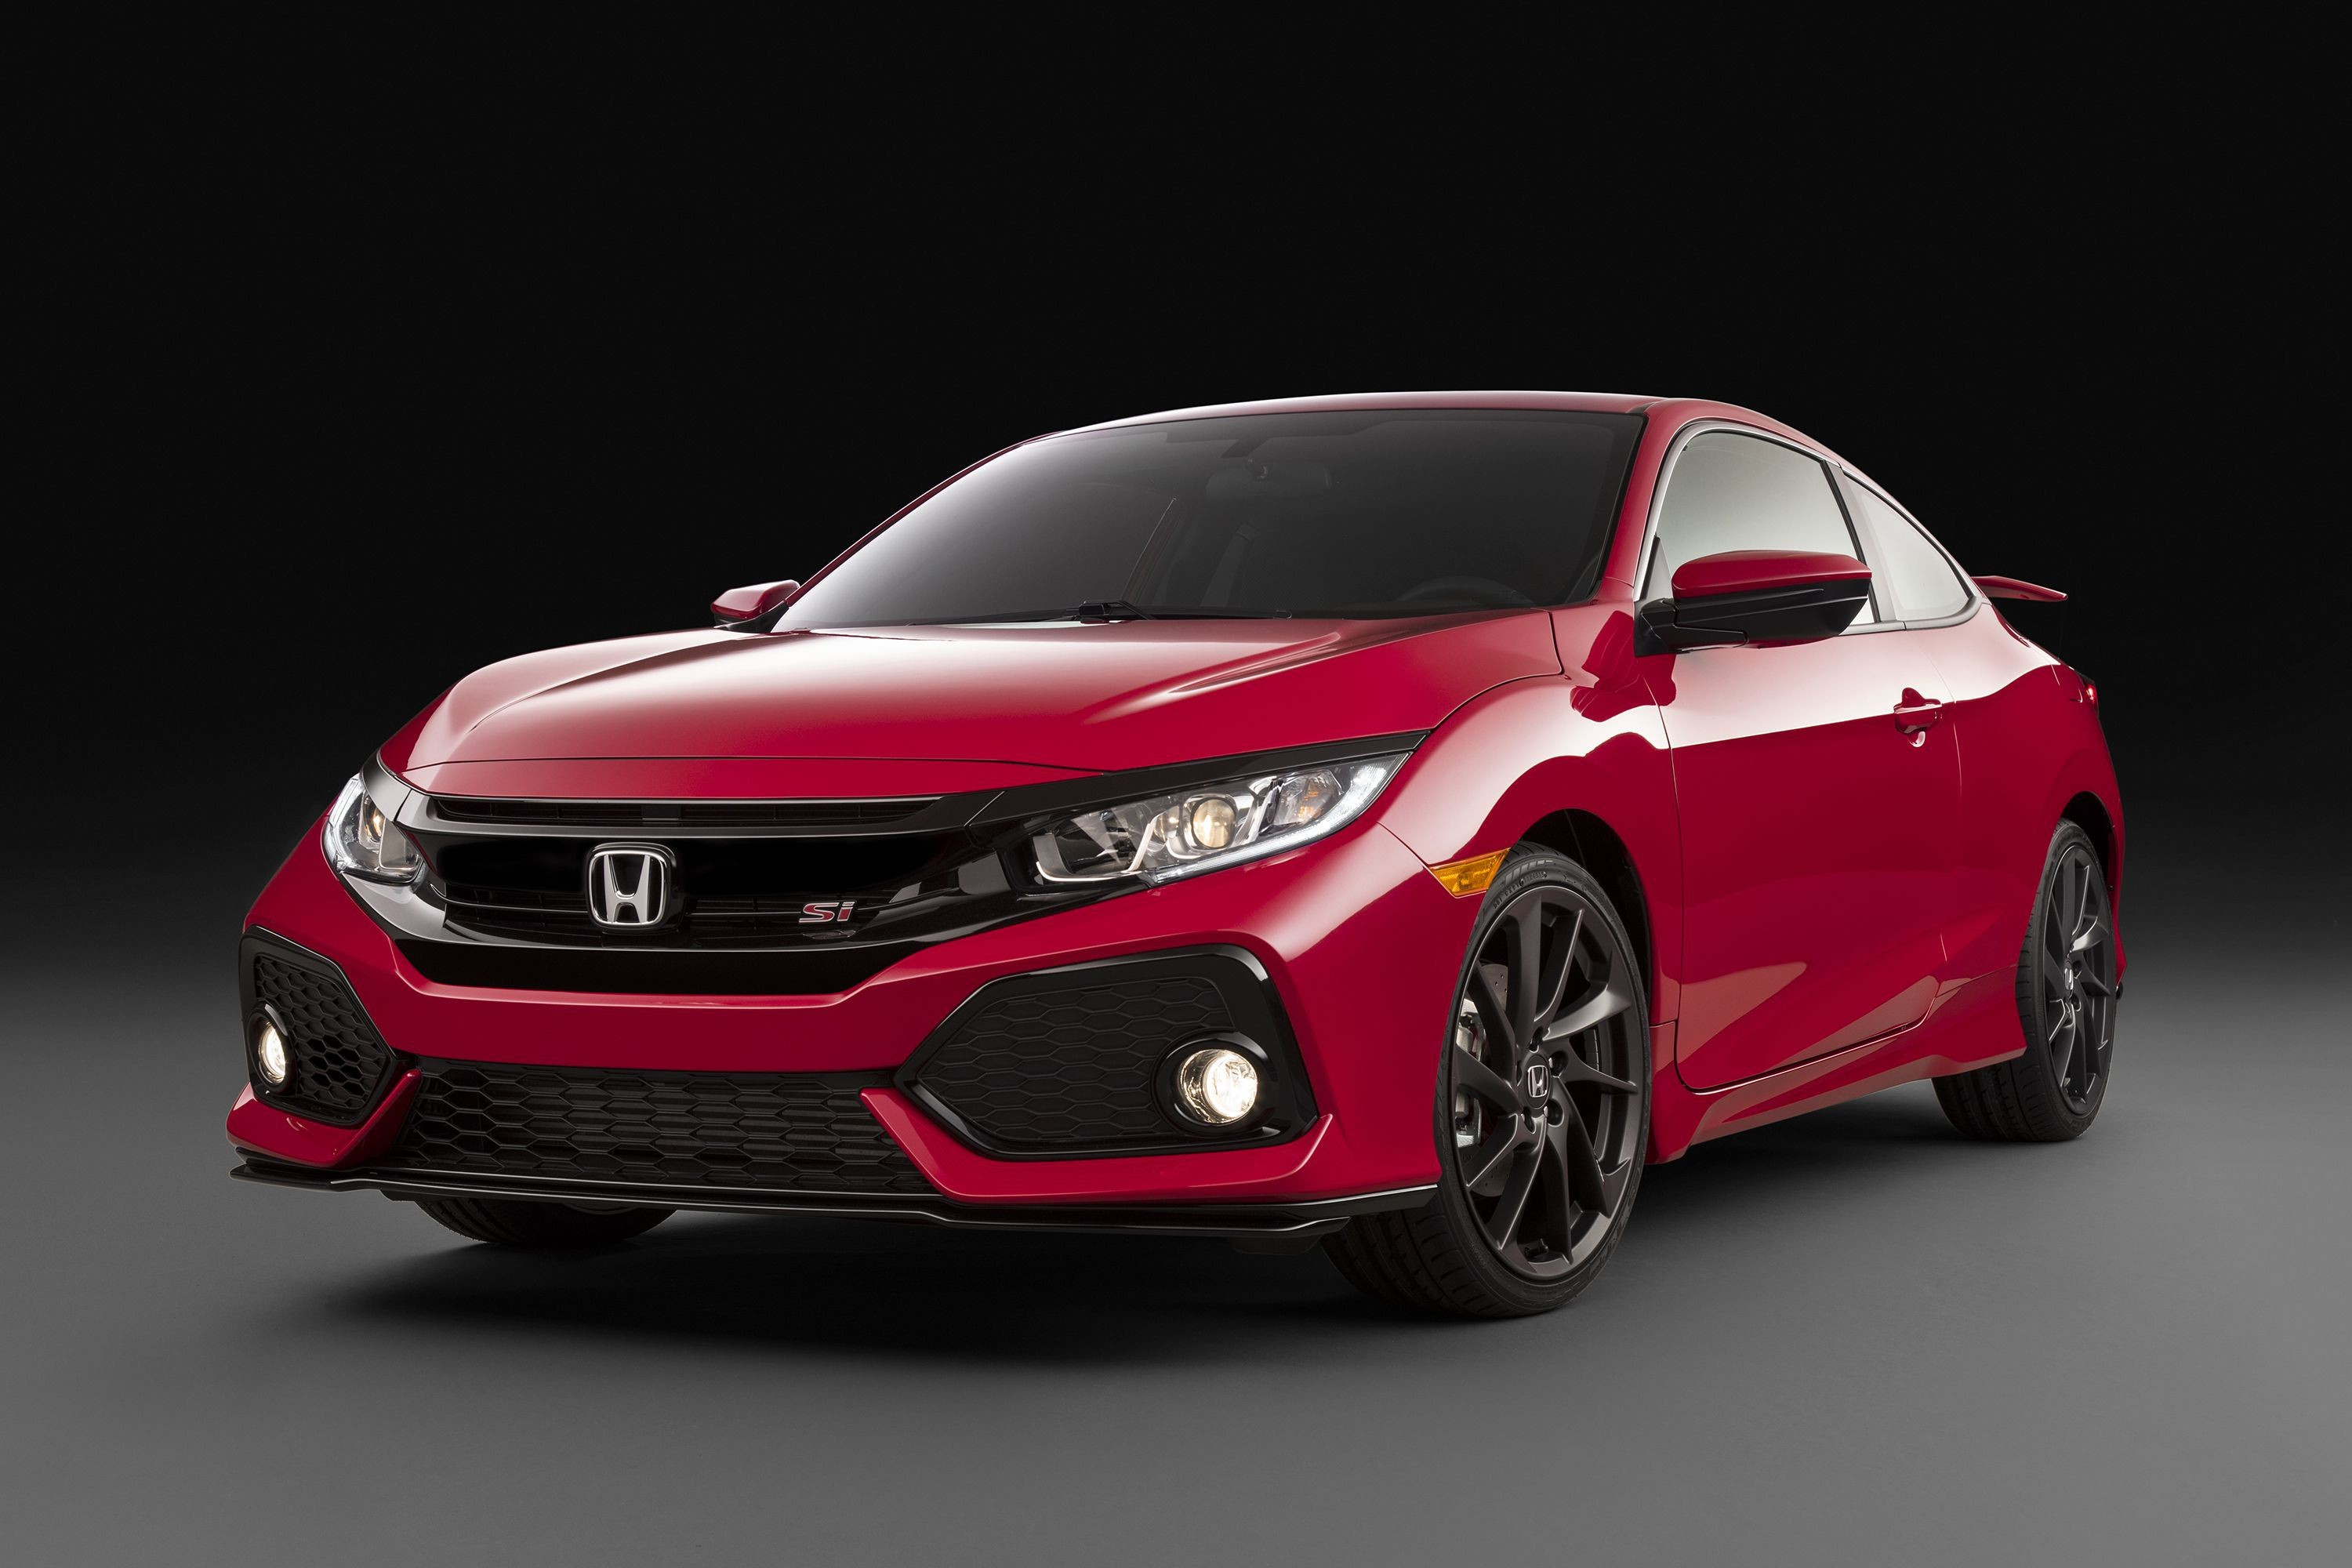 2048x1111 Honda Civic Hatchback Ek Wallpaper